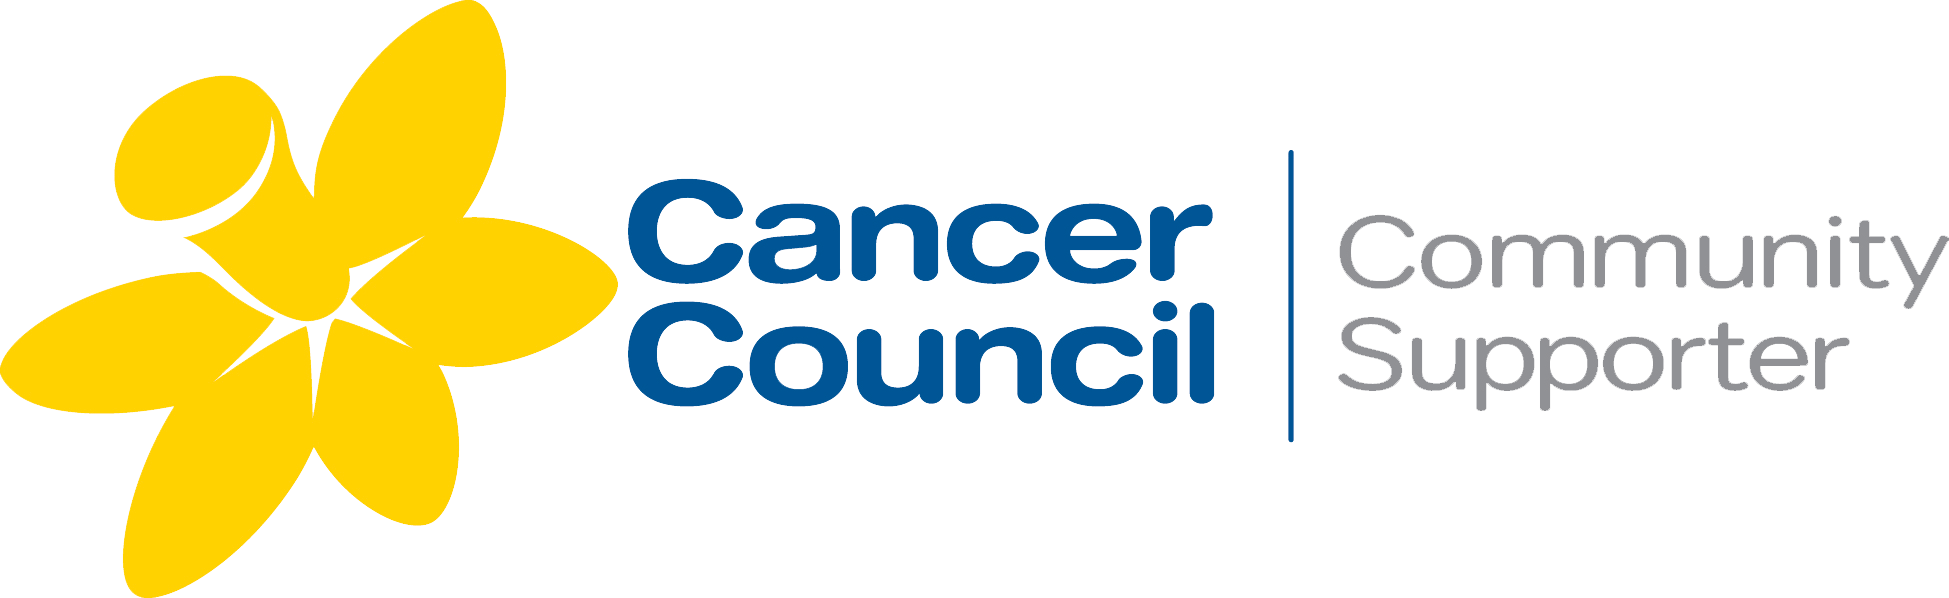 CancerCouncil Community Supporter